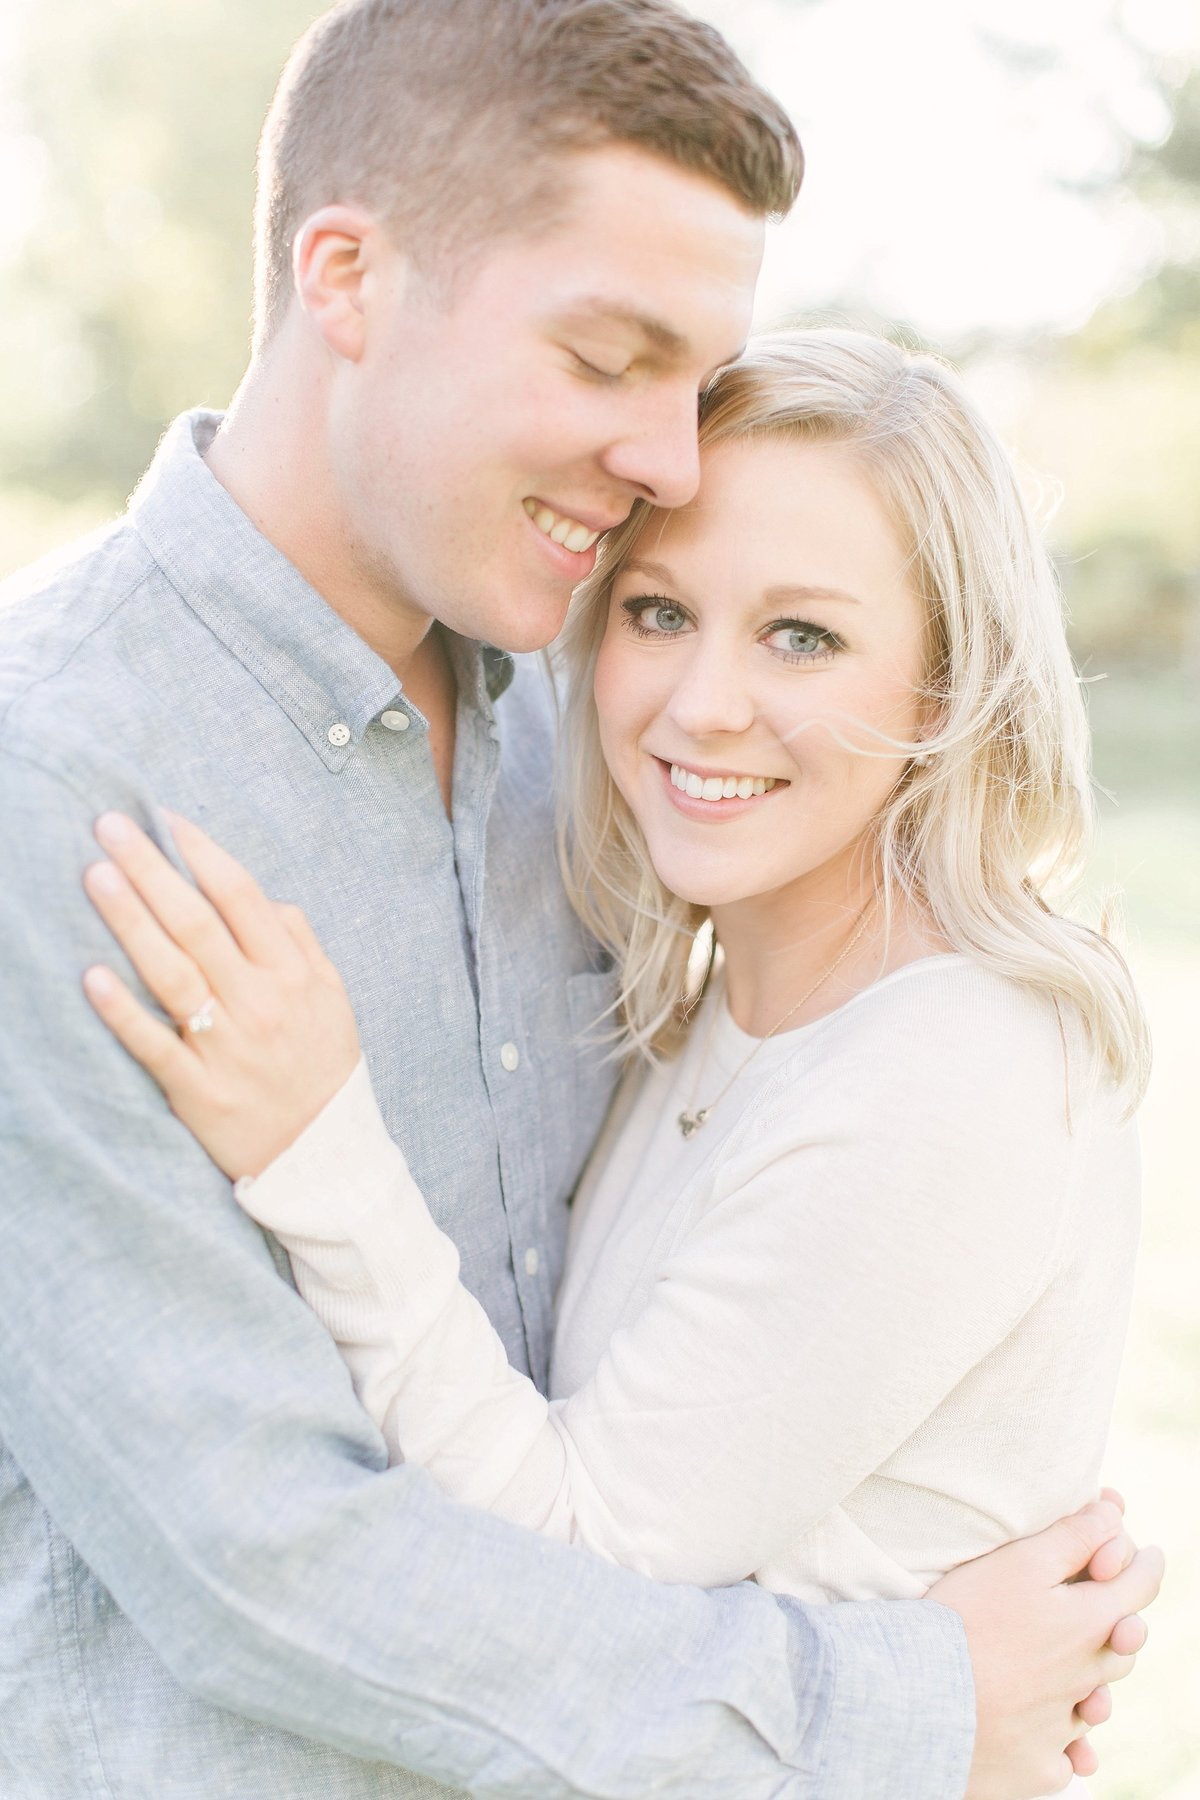 columbus_ohio_wedding_photographer_engagement0014